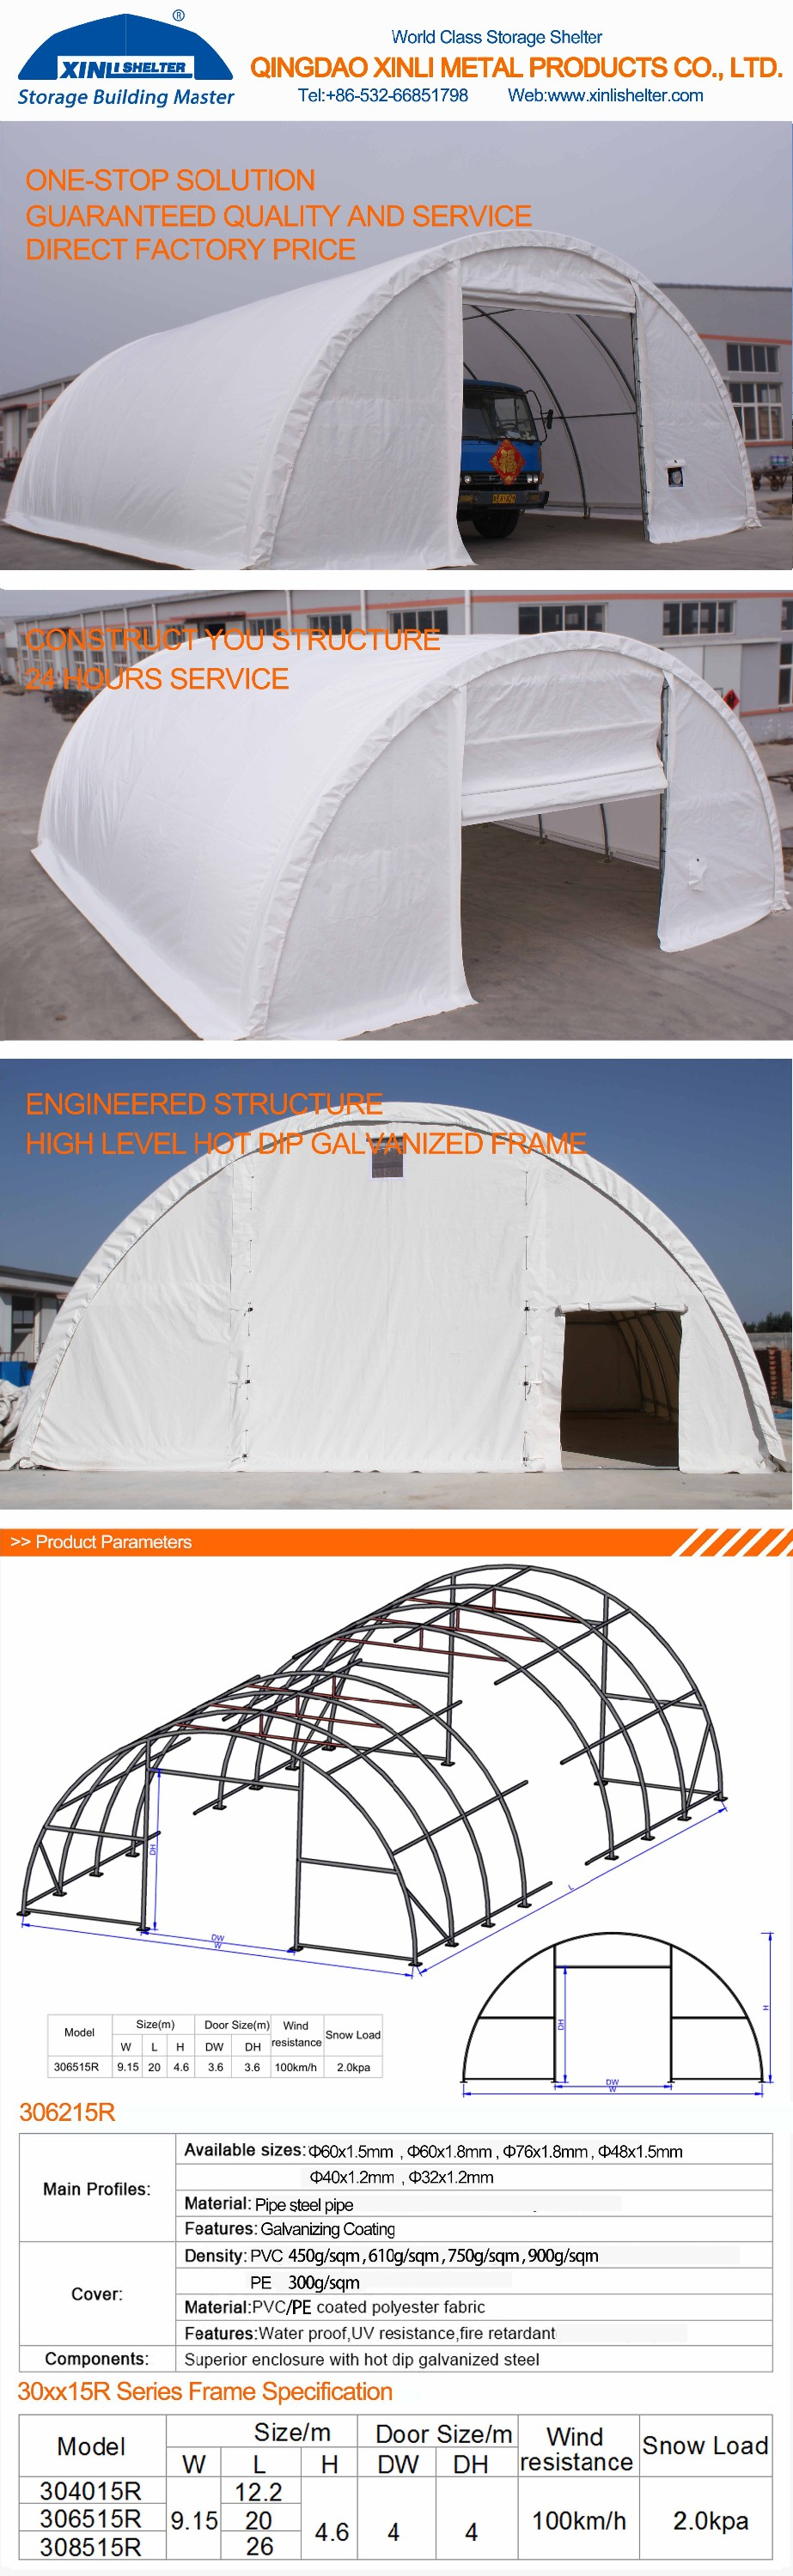 Aluminum Tube Shelters : Large snow loading farm shelter round portable dome tent